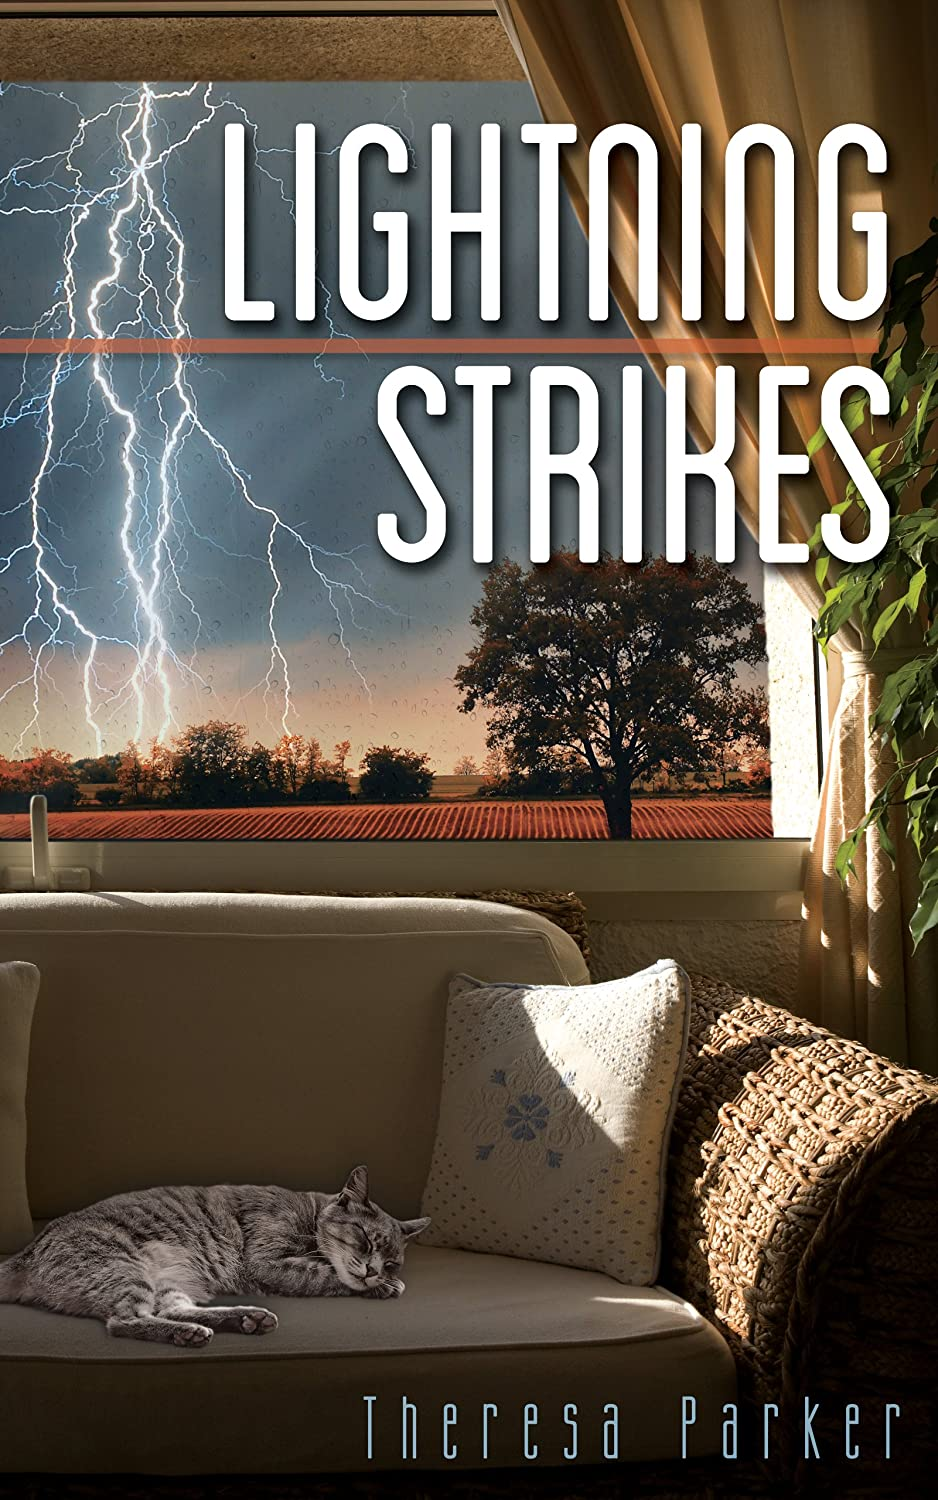 LIGHTNINGSTRIKESv1_75